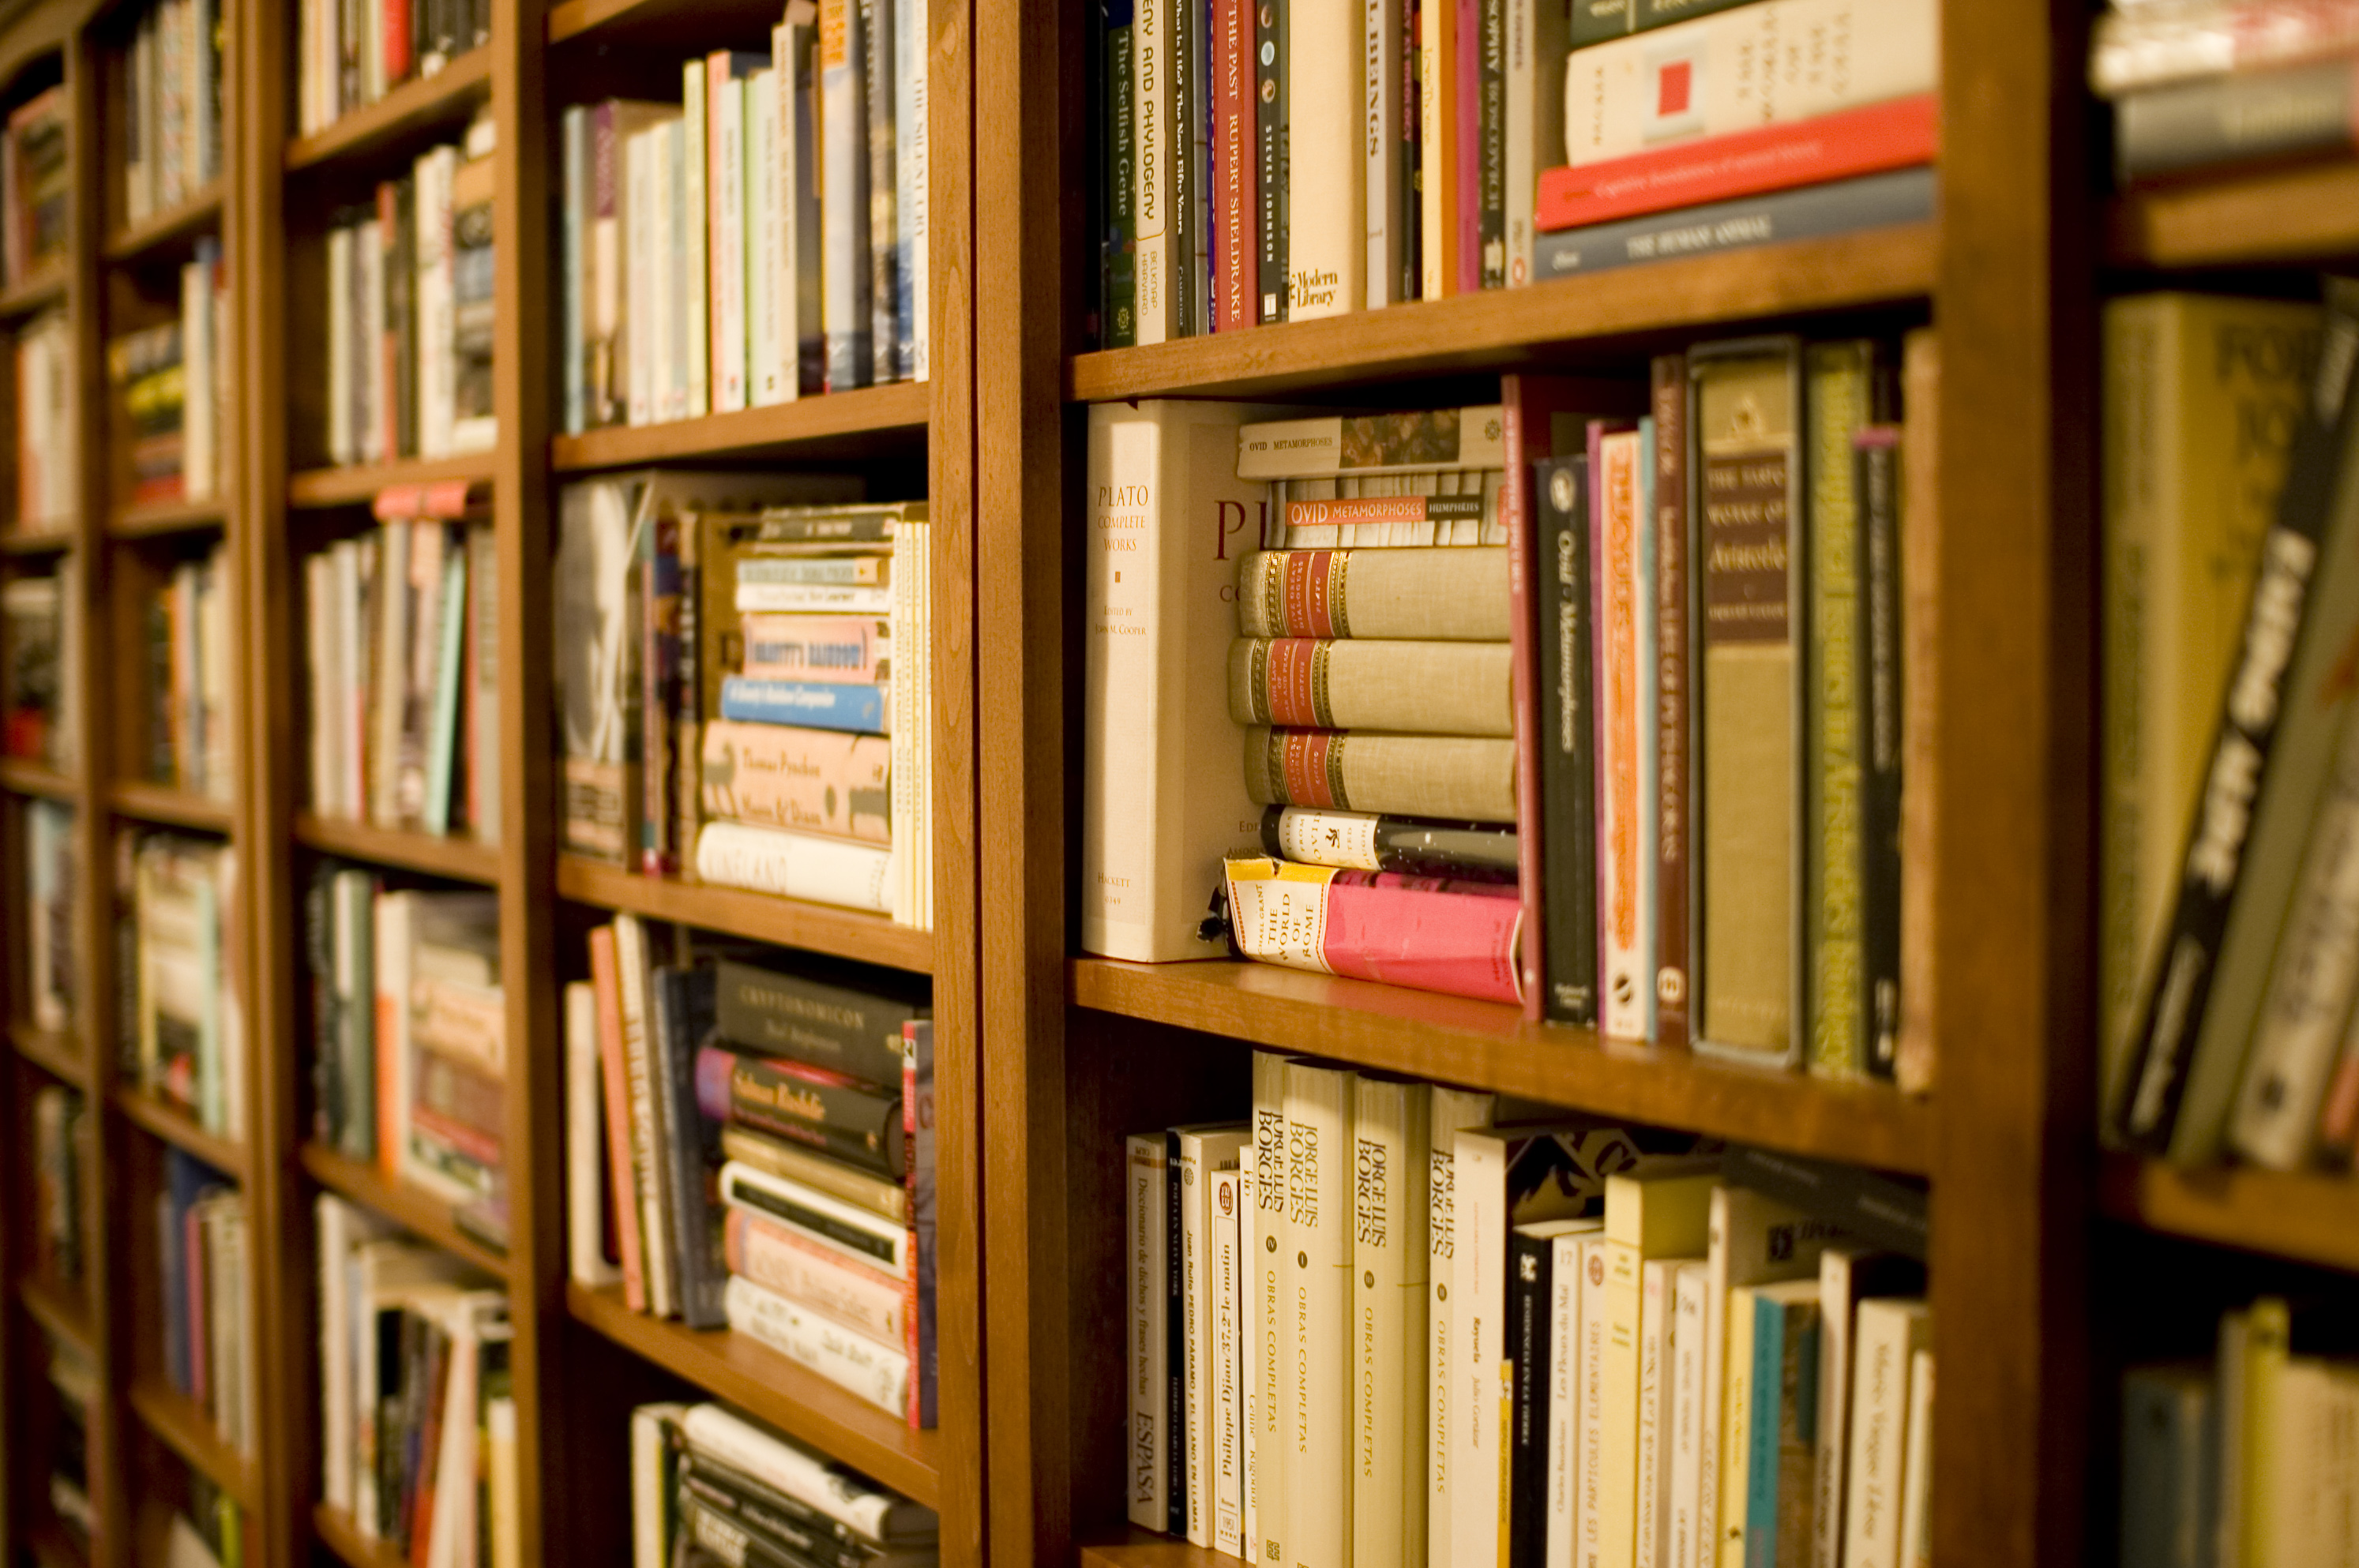 An image of a bookshelf.